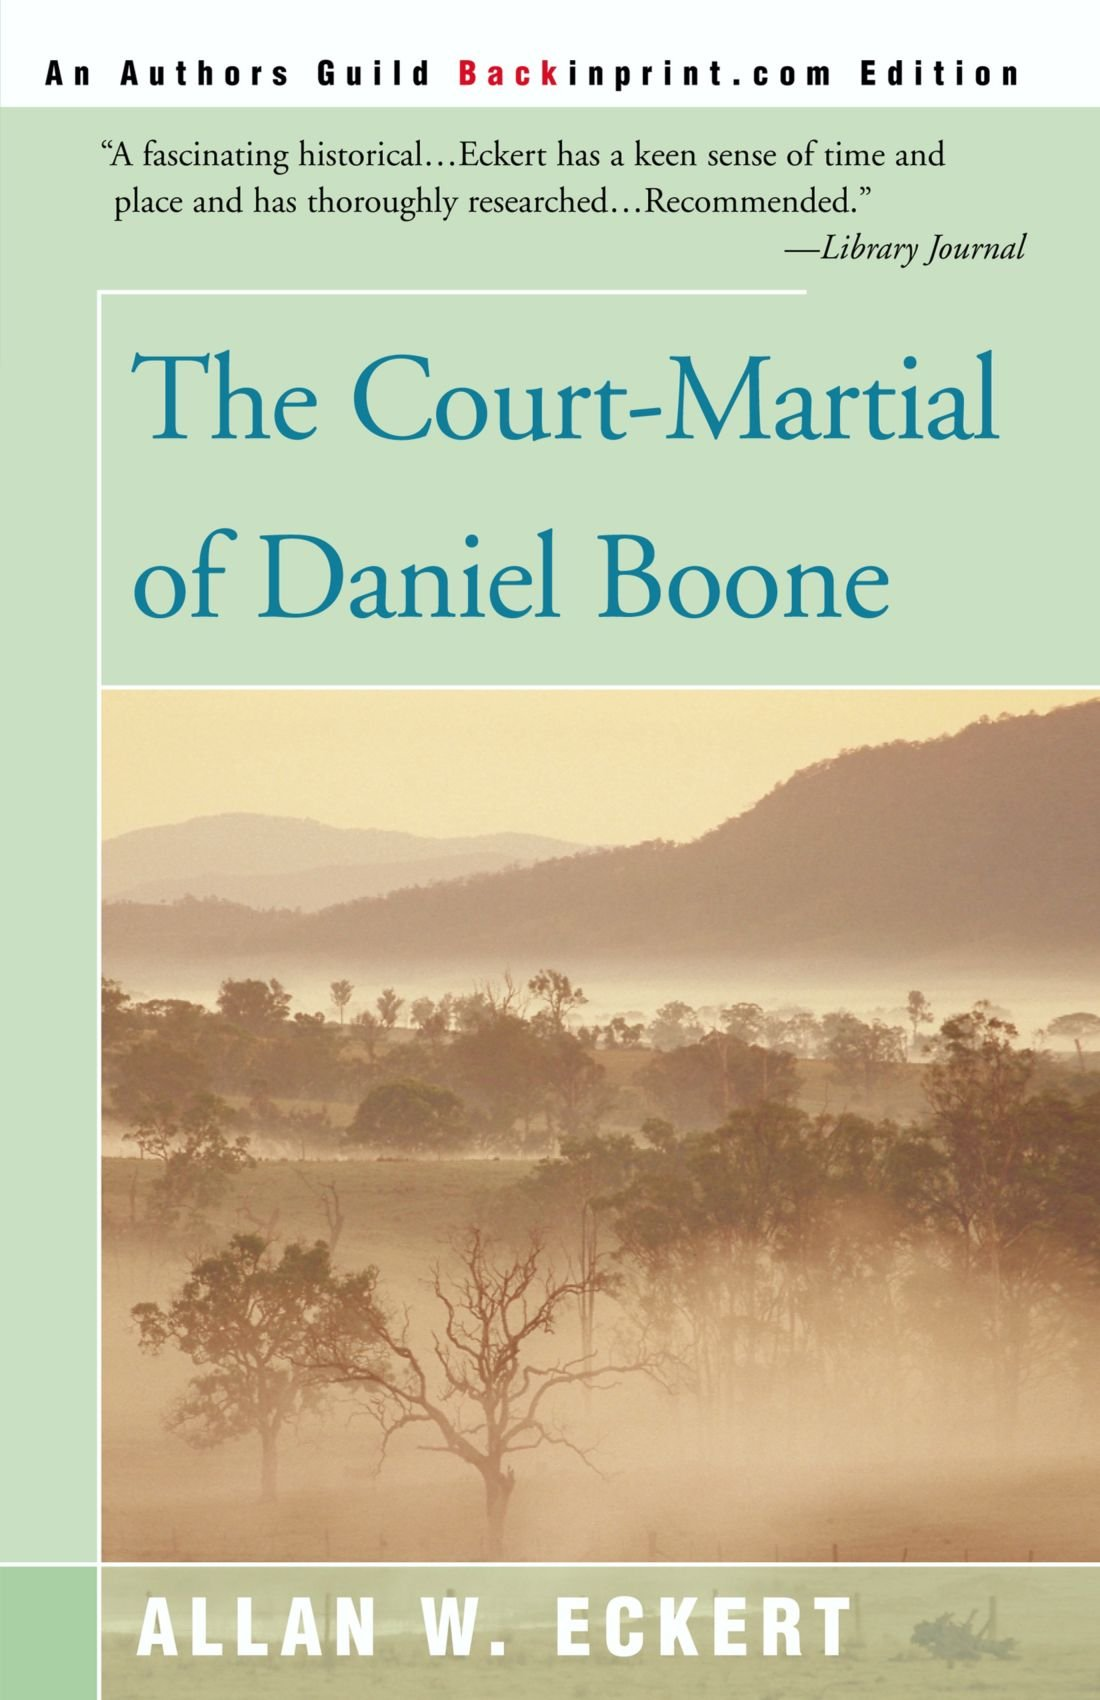 The Court-Martial of Daniel Boone